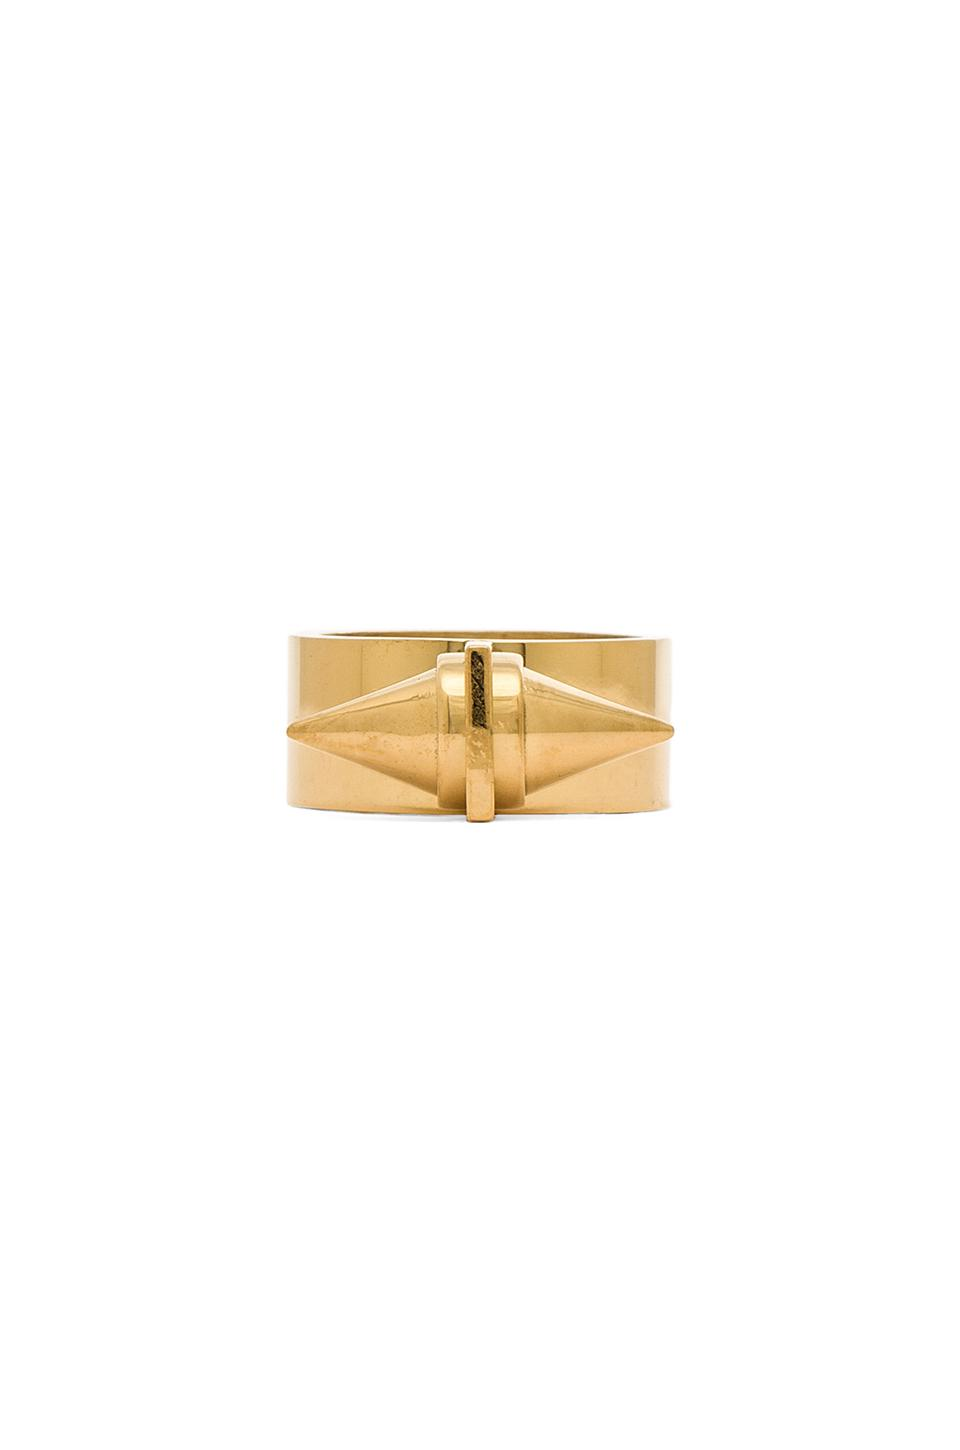 Amber Sceats Alexia Ring in Gold